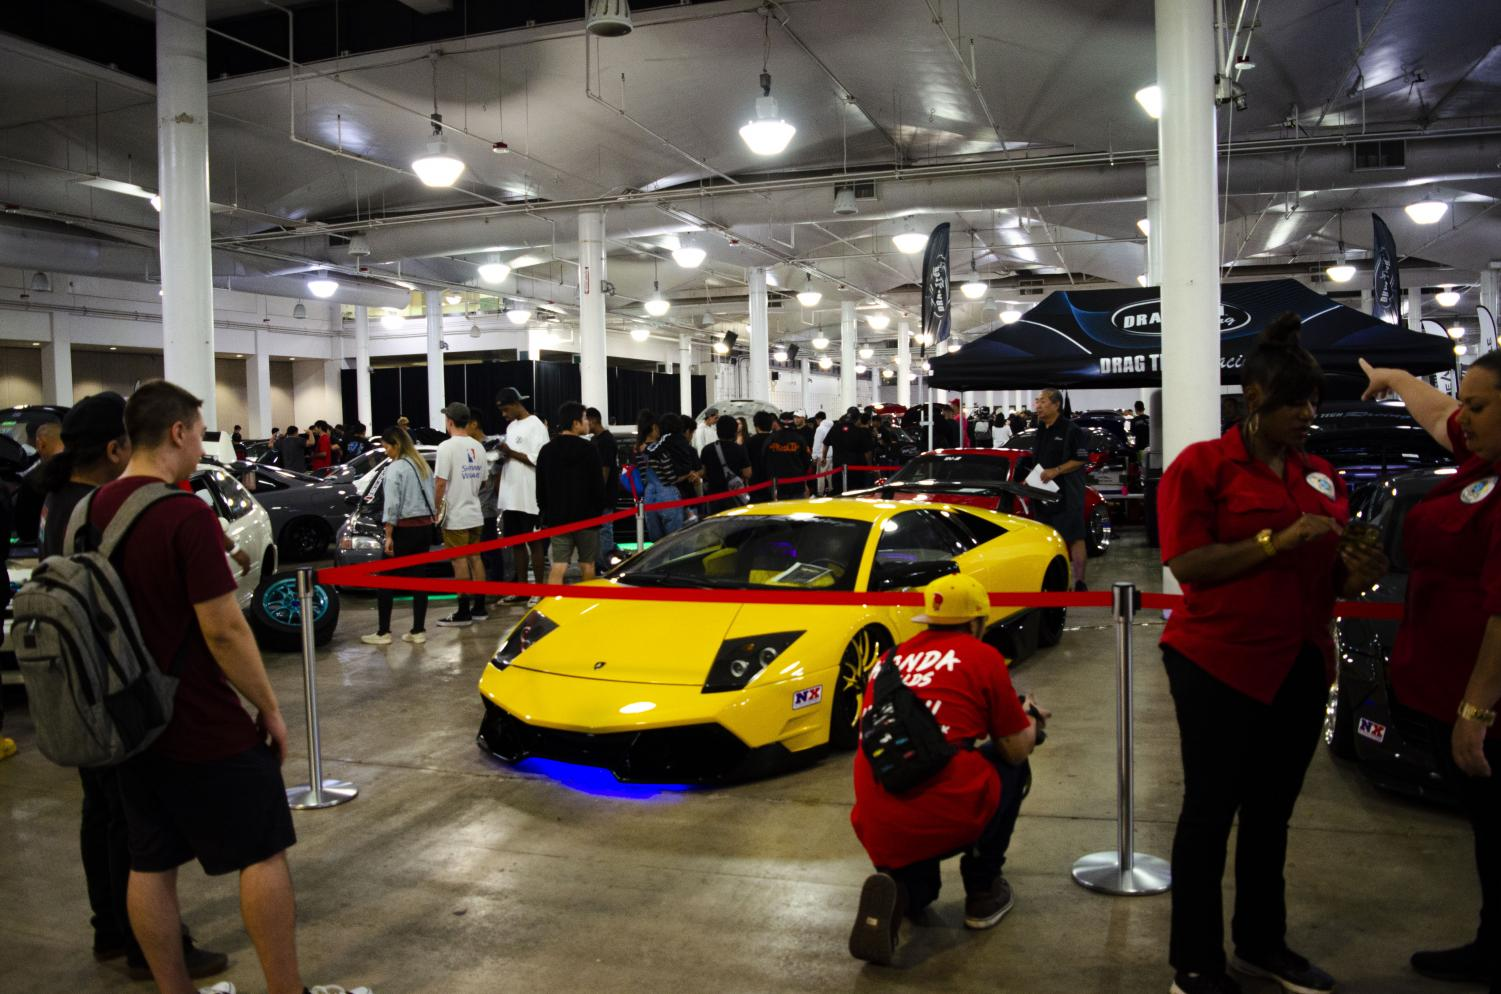 Wekfest car show at Blaisdell Center on Saturday featured Lamborghinis and more.